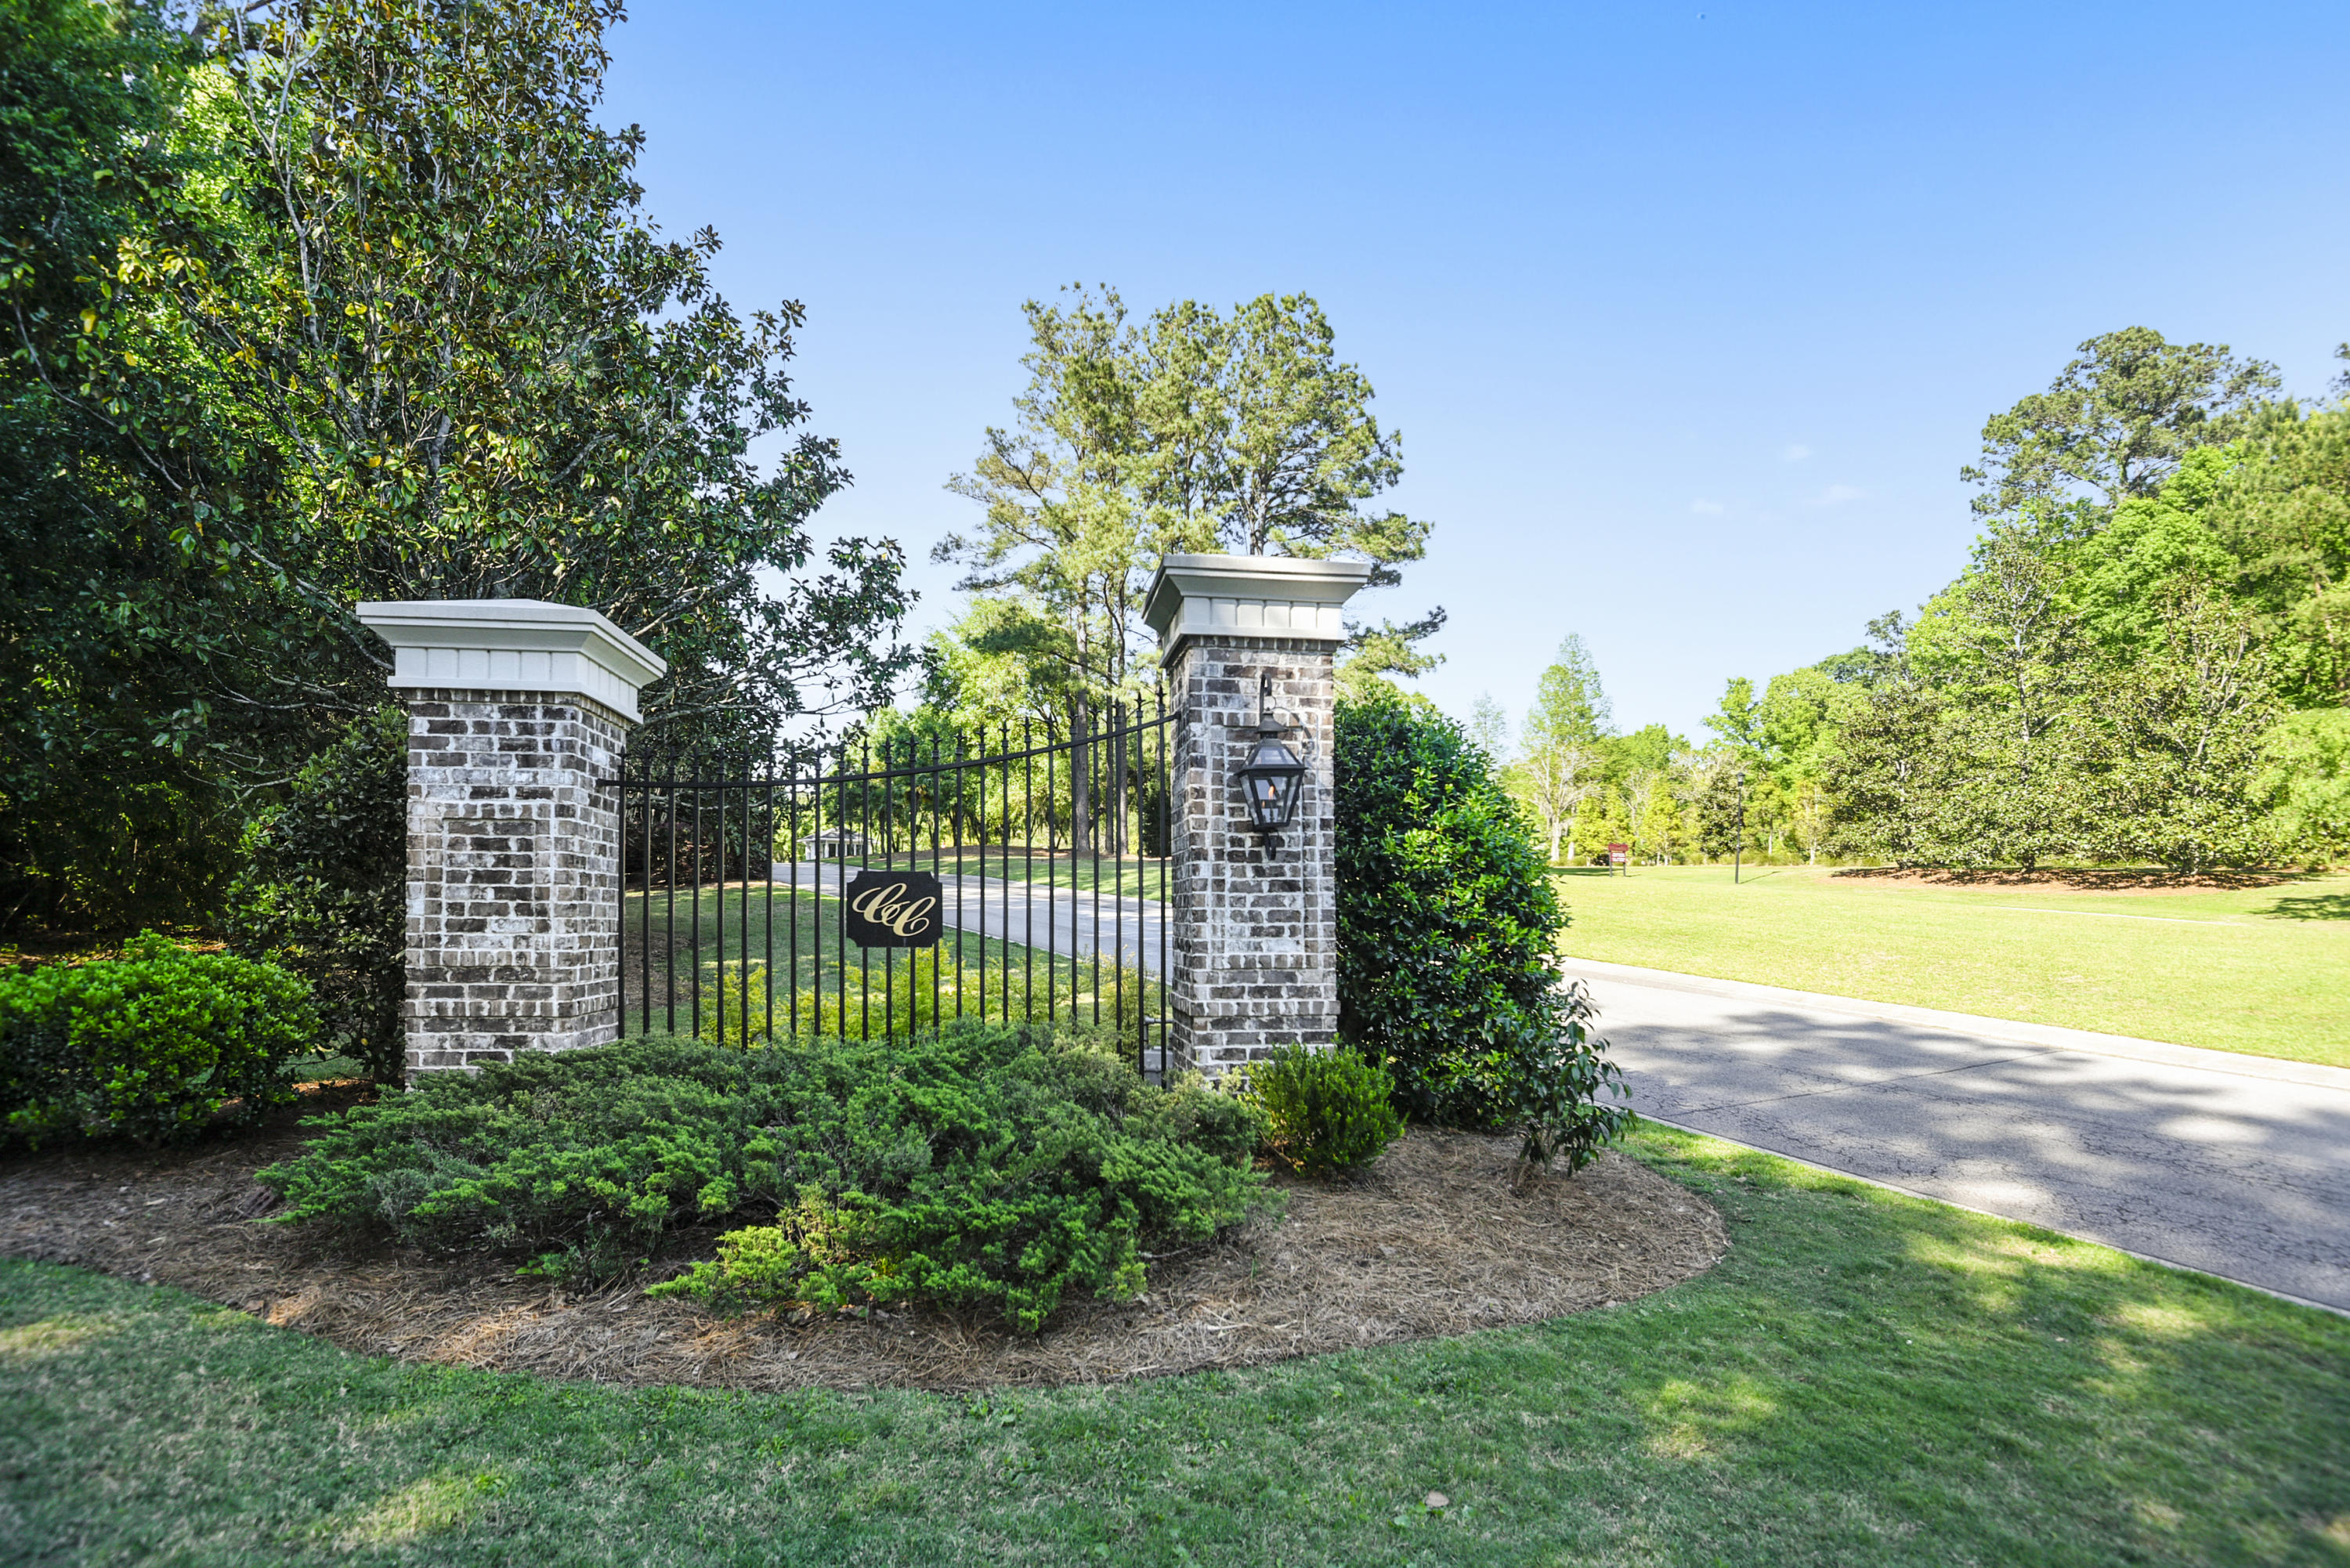 Coosaw Creek Country Club Homes For Sale - 8855 Fairway Woods, North Charleston, SC - 60